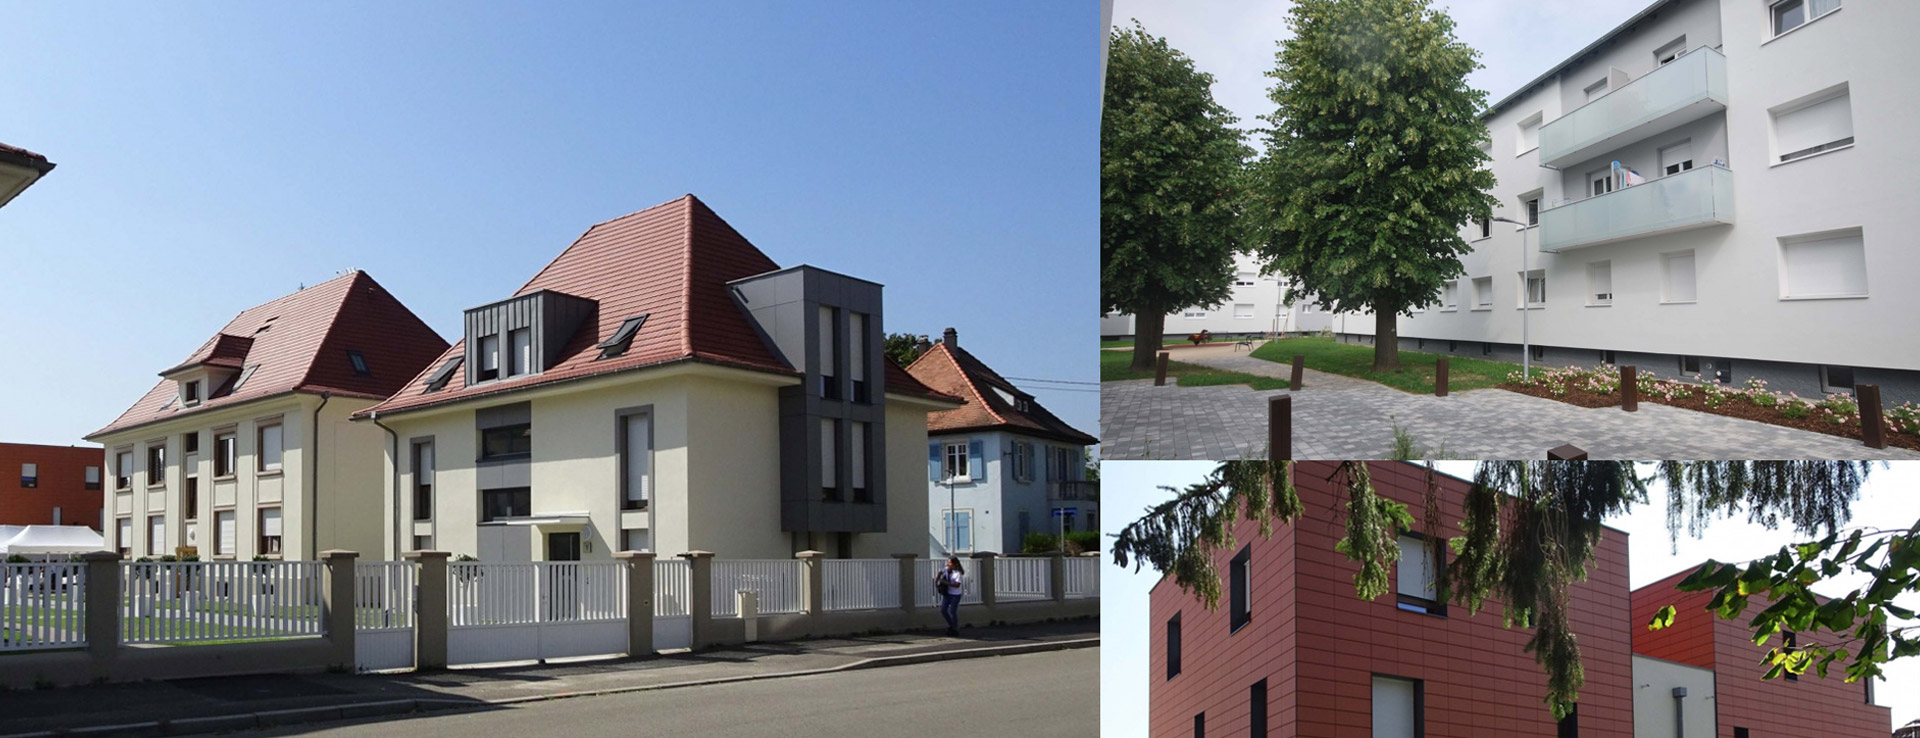 naos-architecture_projets-neufs